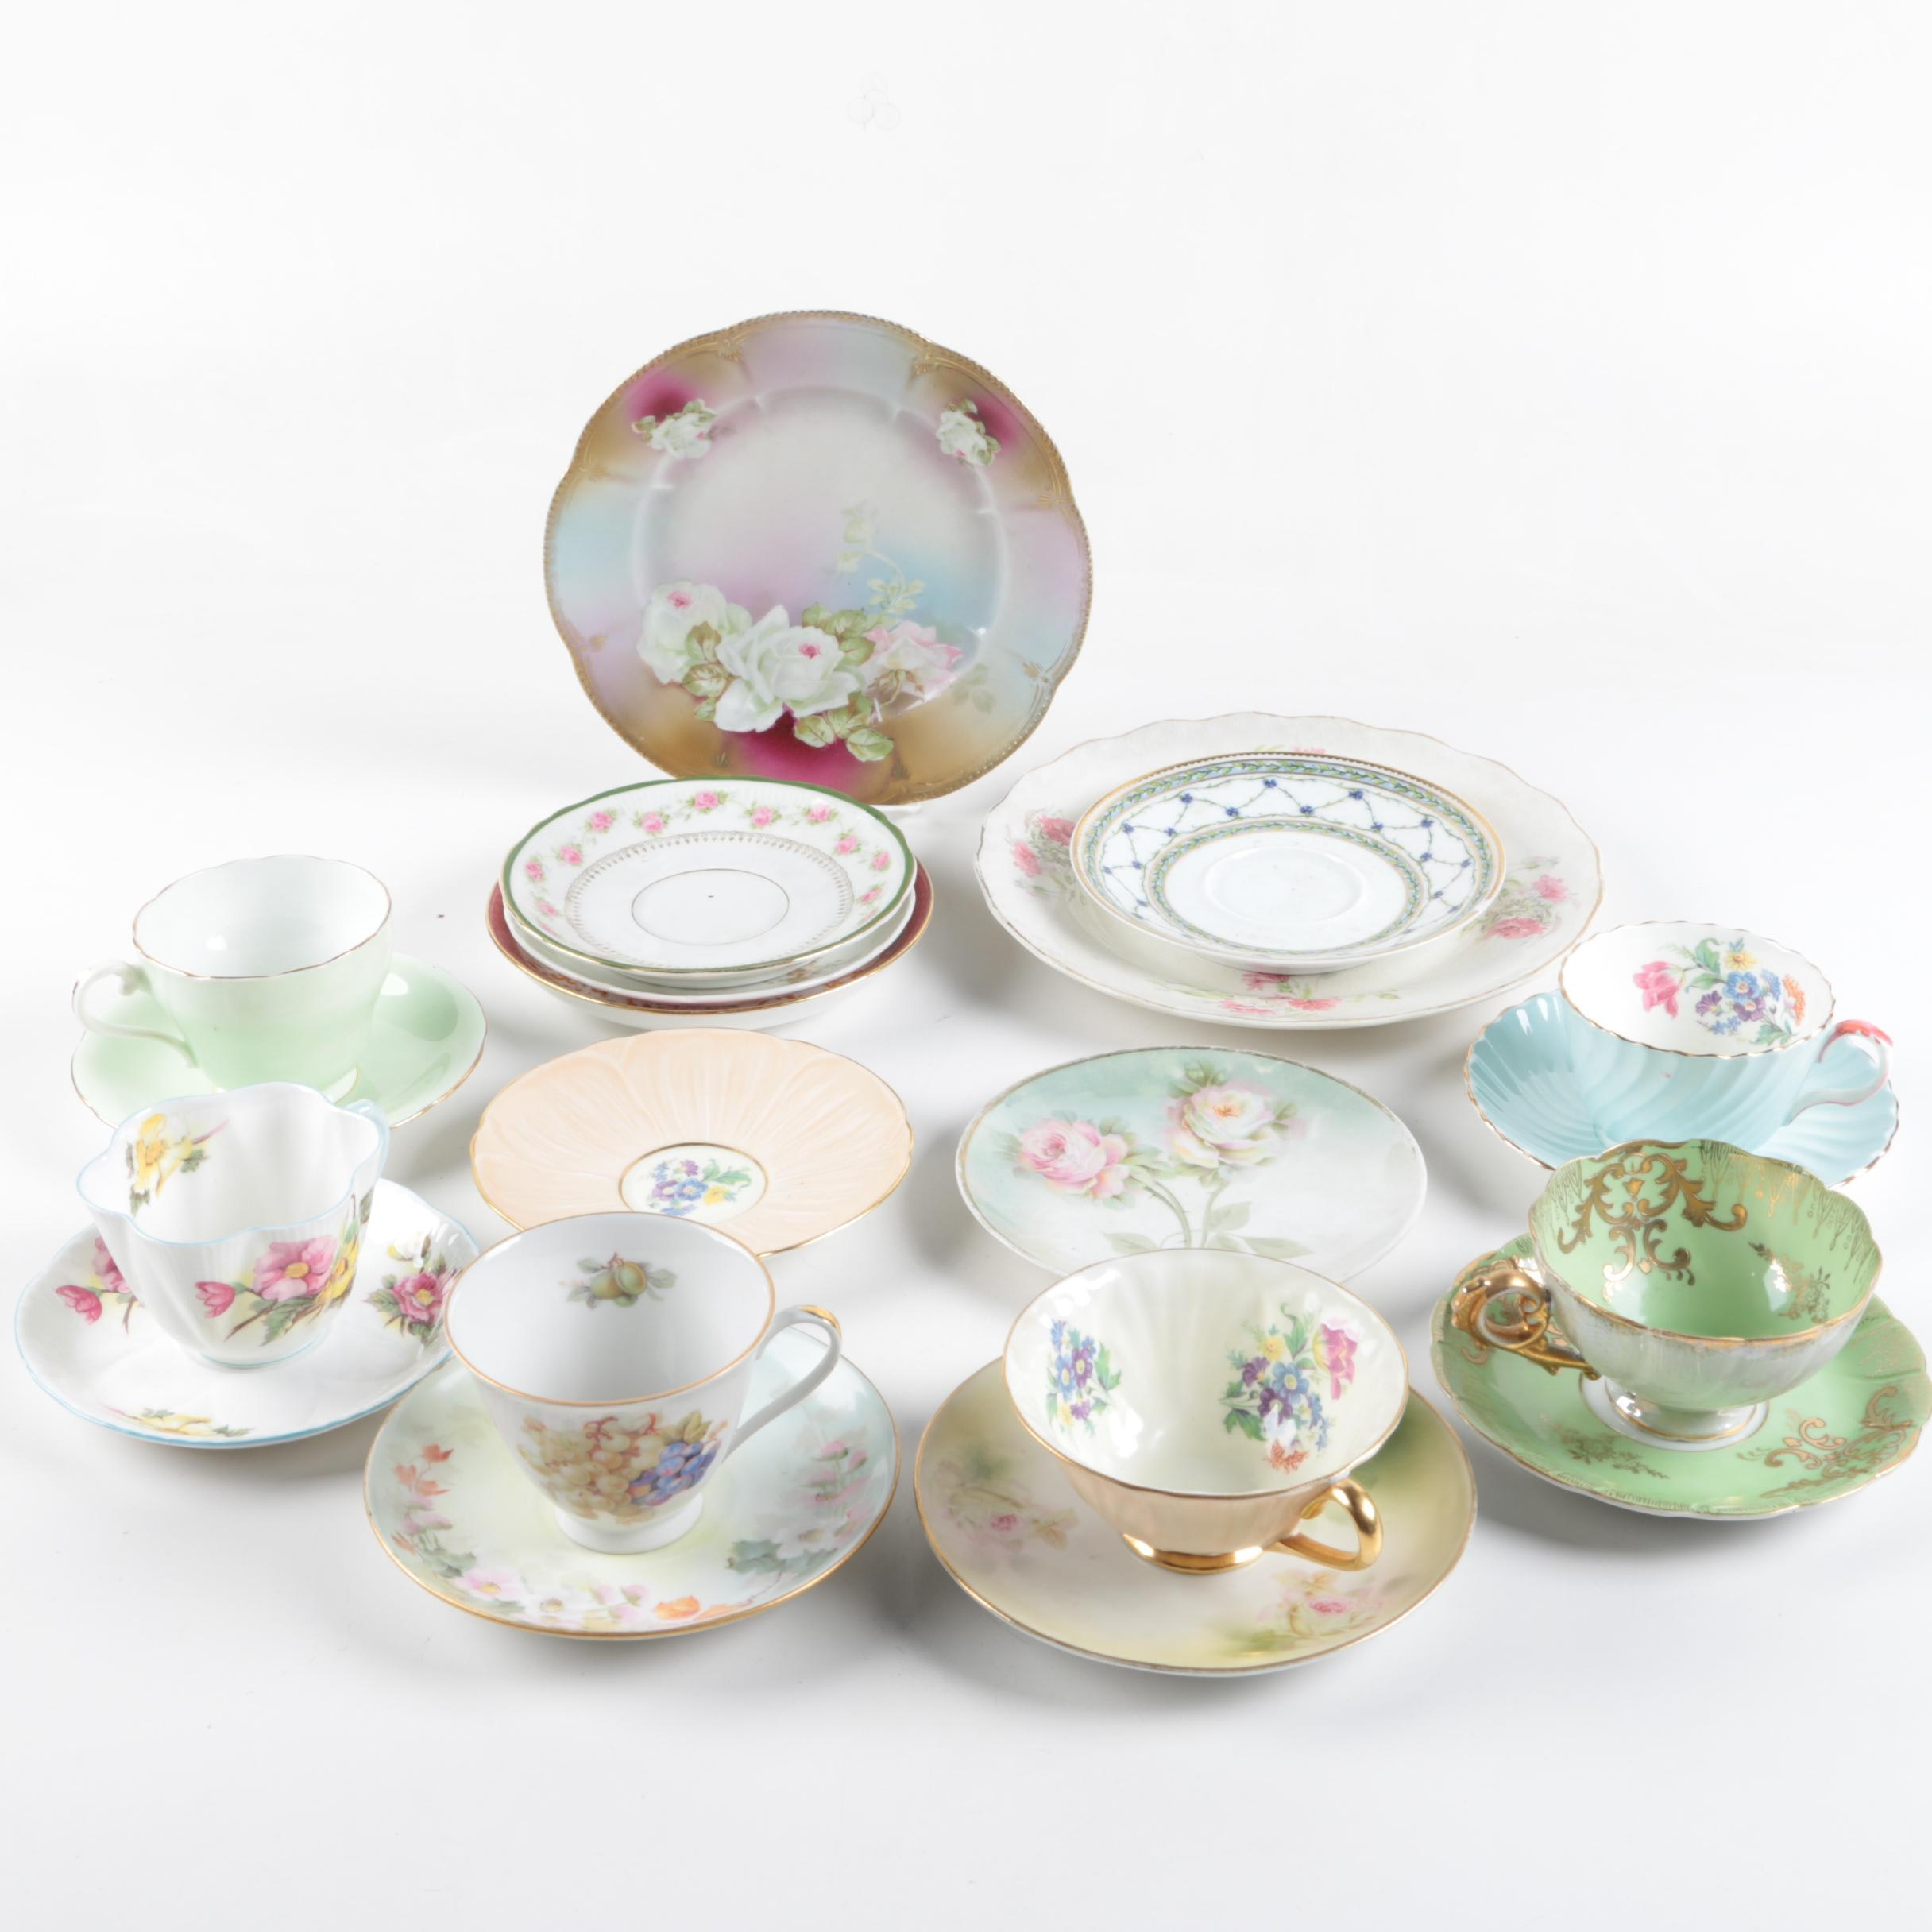 Vintage Teacups and Plates Including Shelley